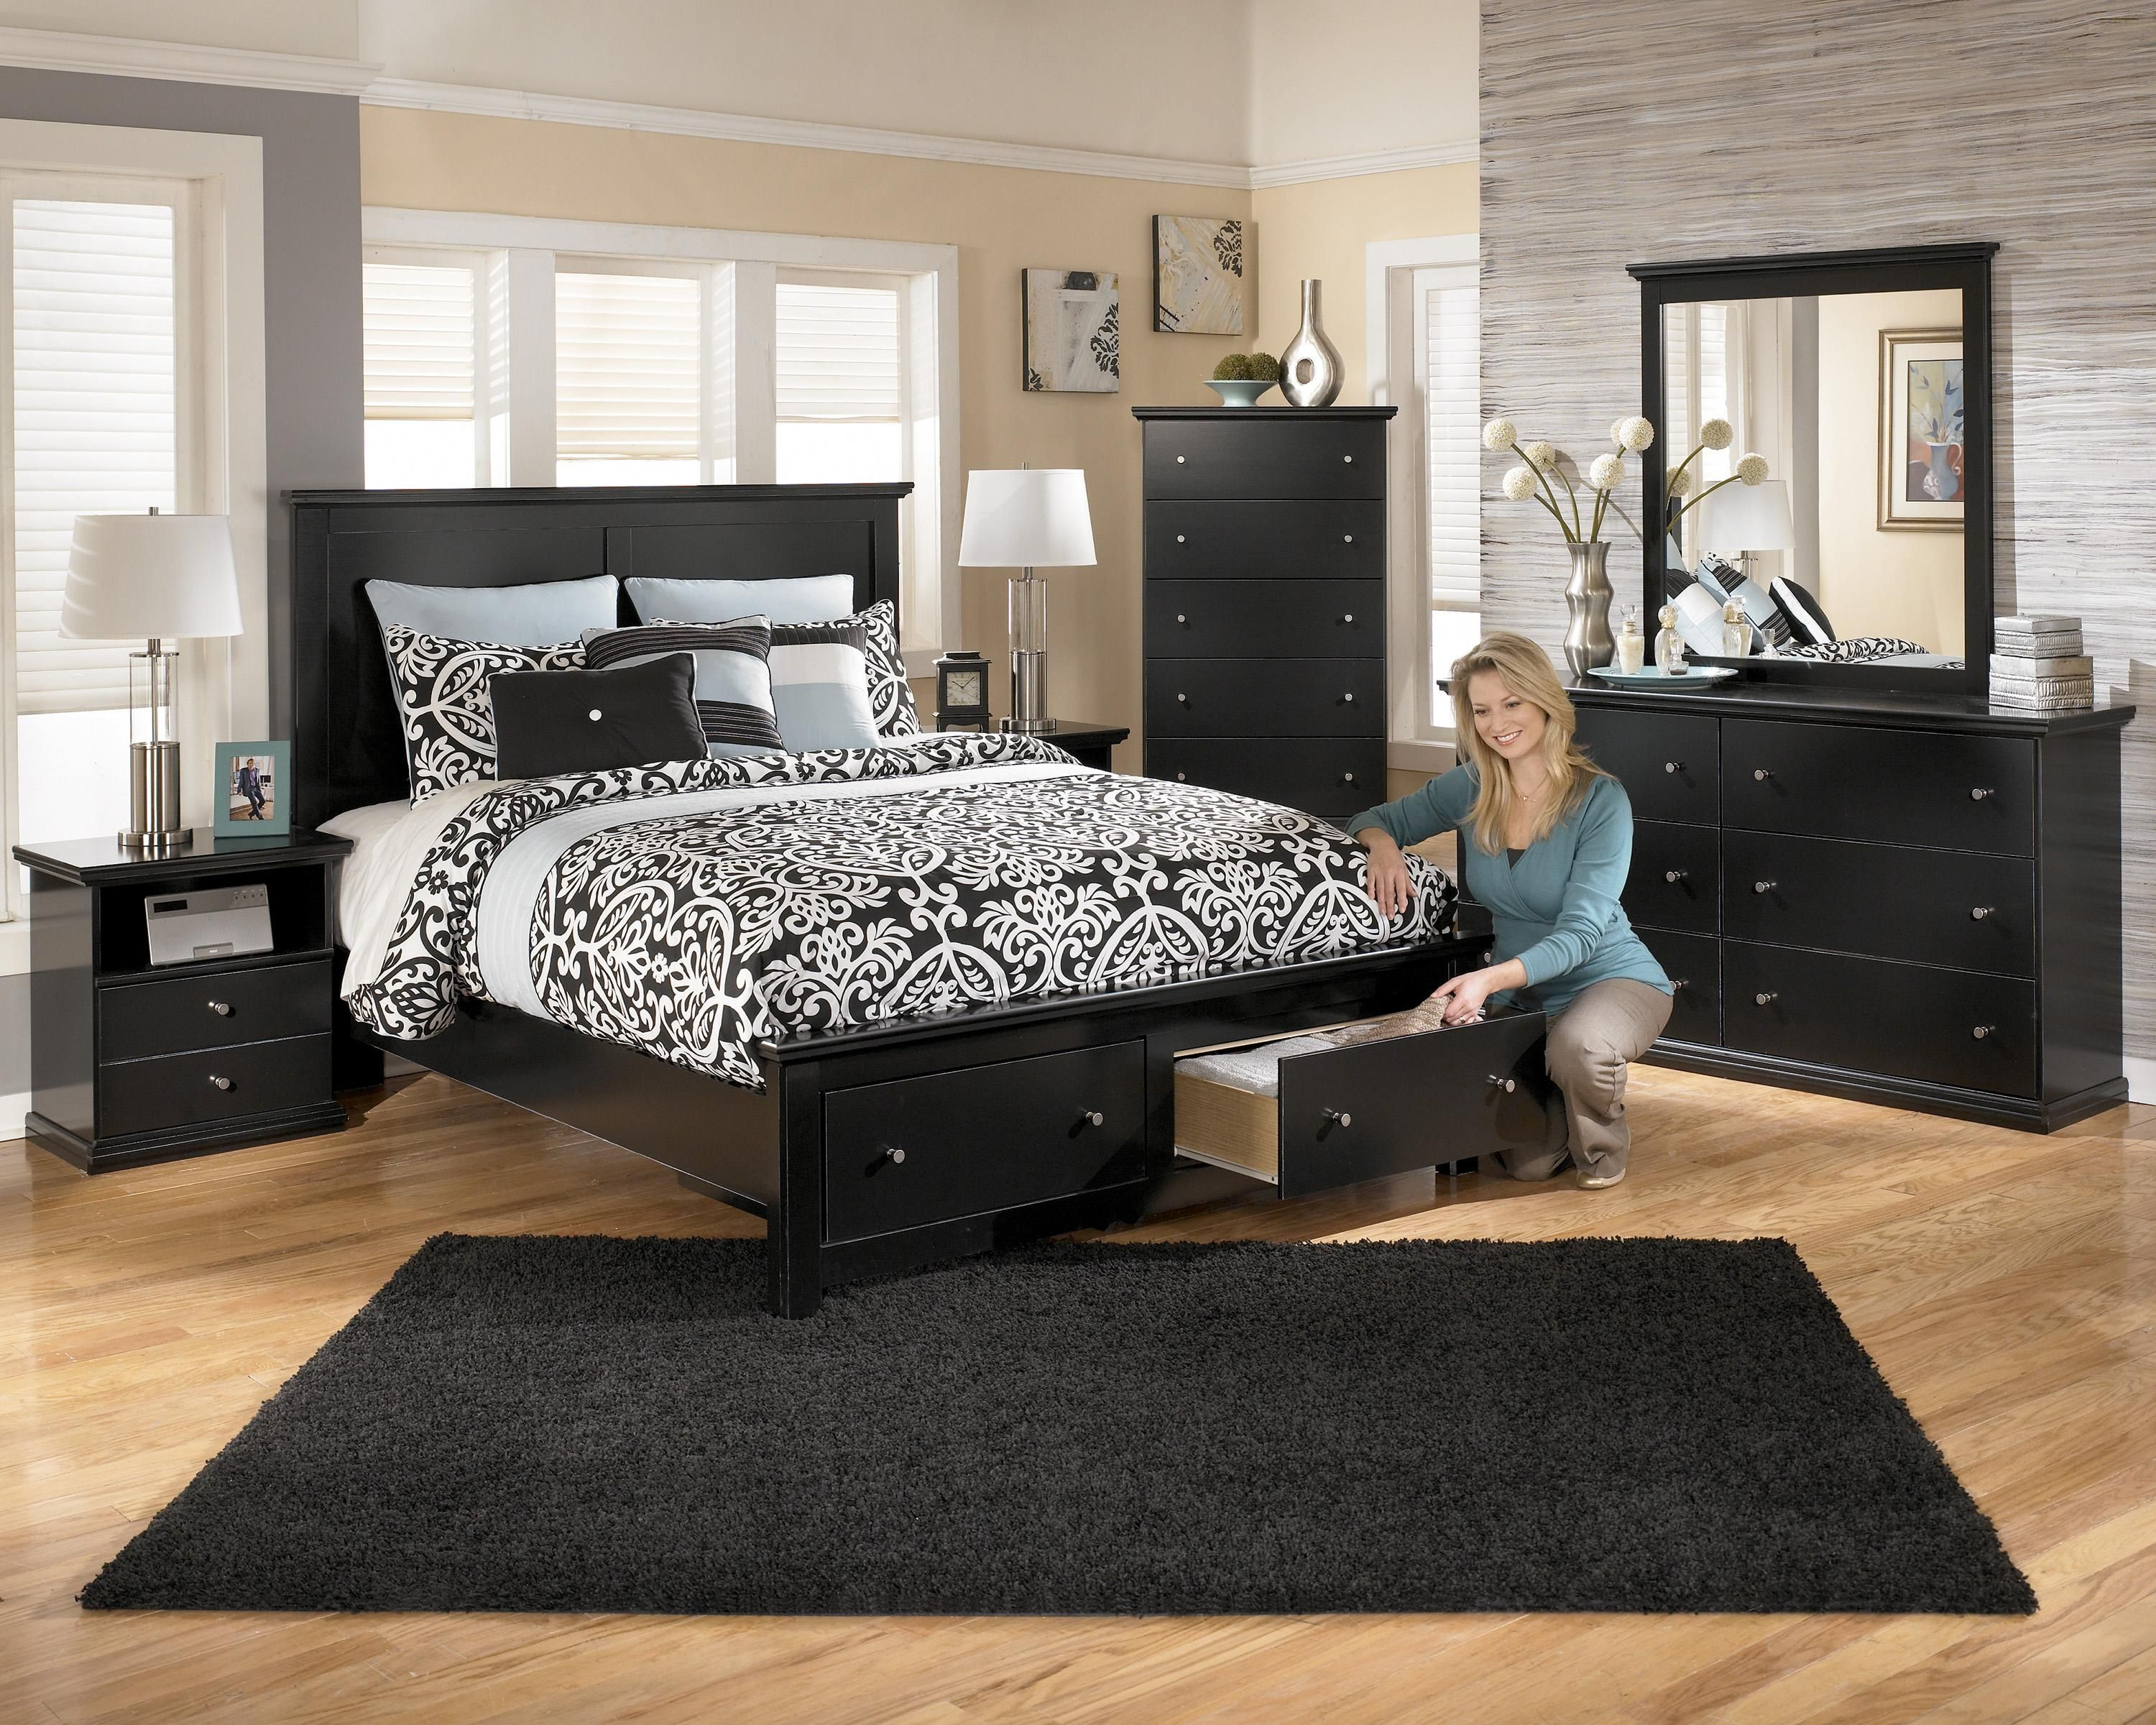 services our american sleepers provided glove trained delivery on we copeland more by white bedroom leather courteous the a furniture store have catalinabedroom and modern big emphasis classic luxury also mattress